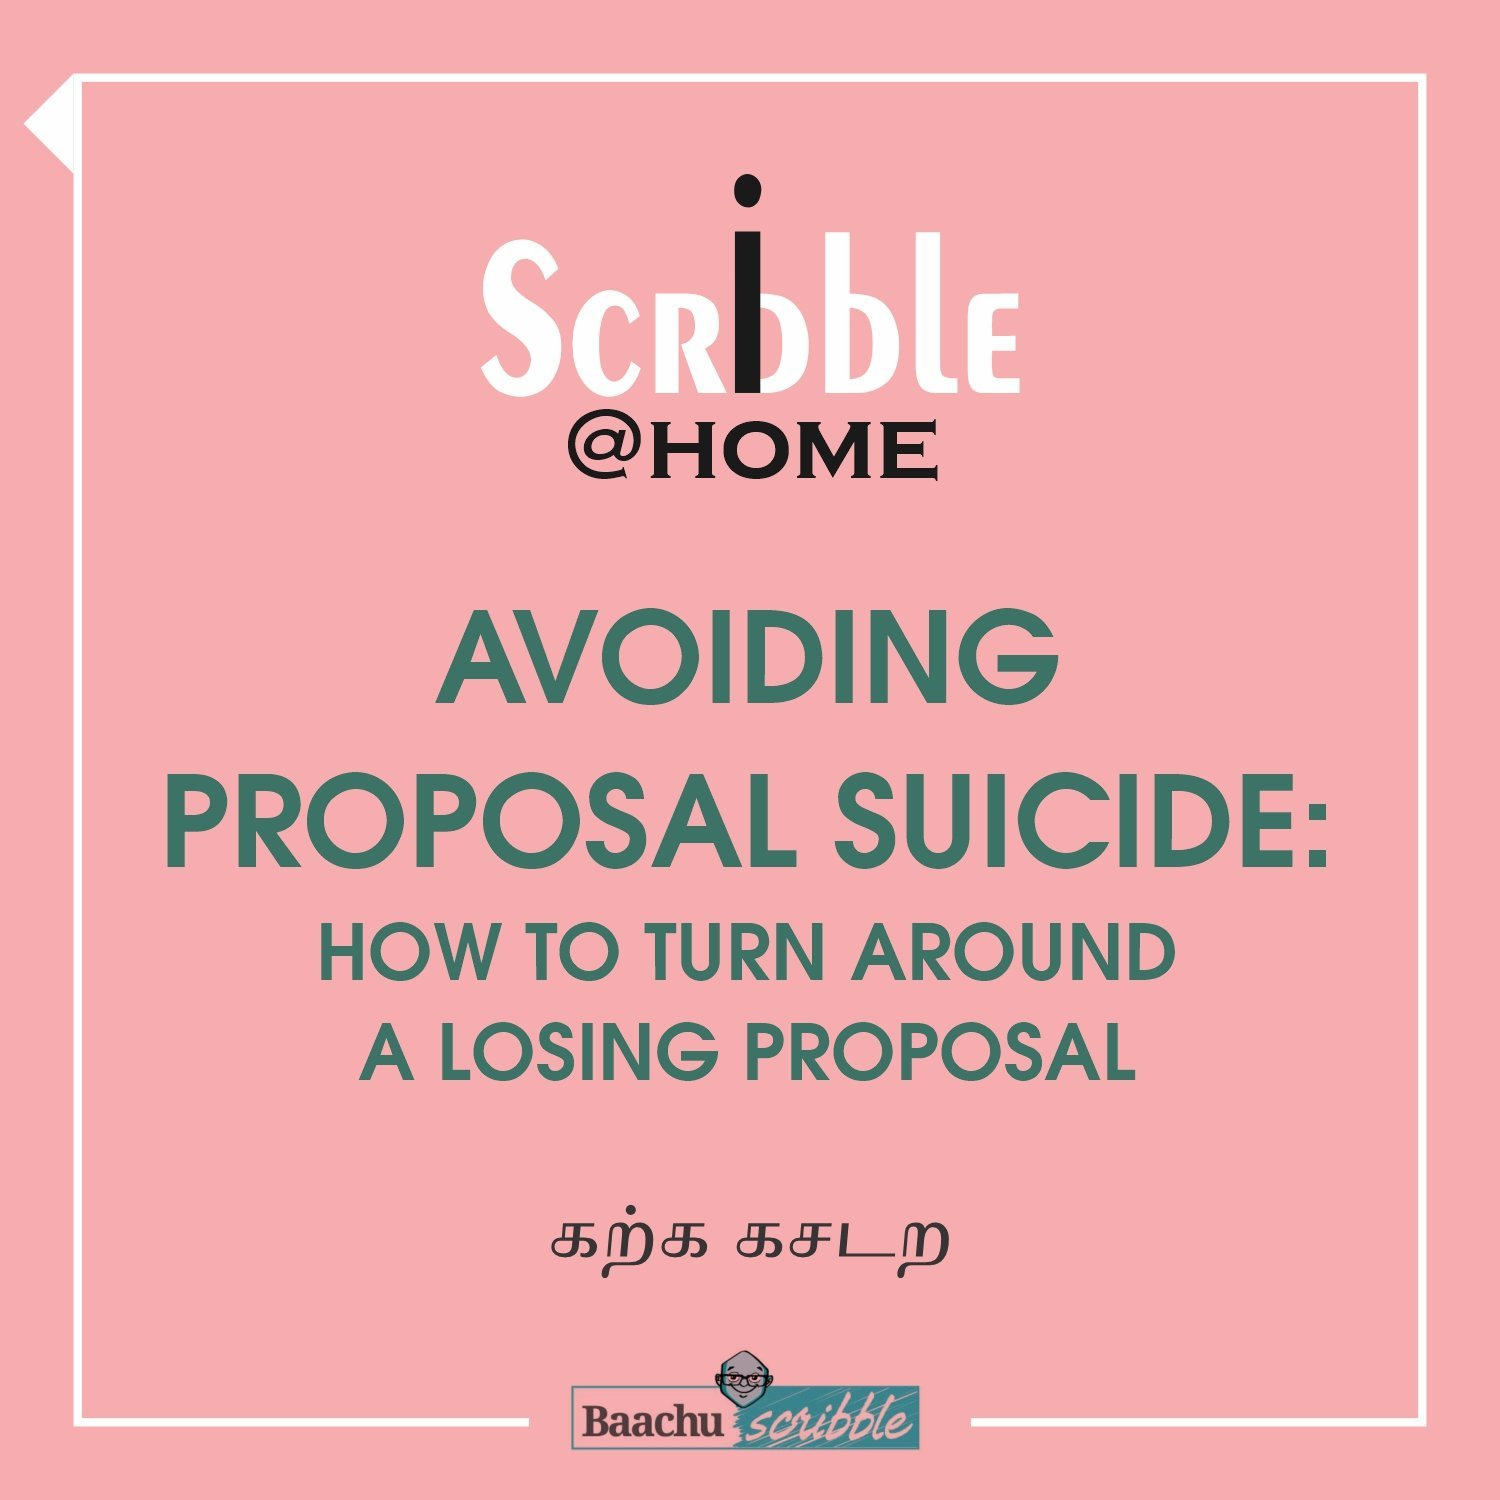 Avoiding Proposal Suicide: How to turn around a losing proposal